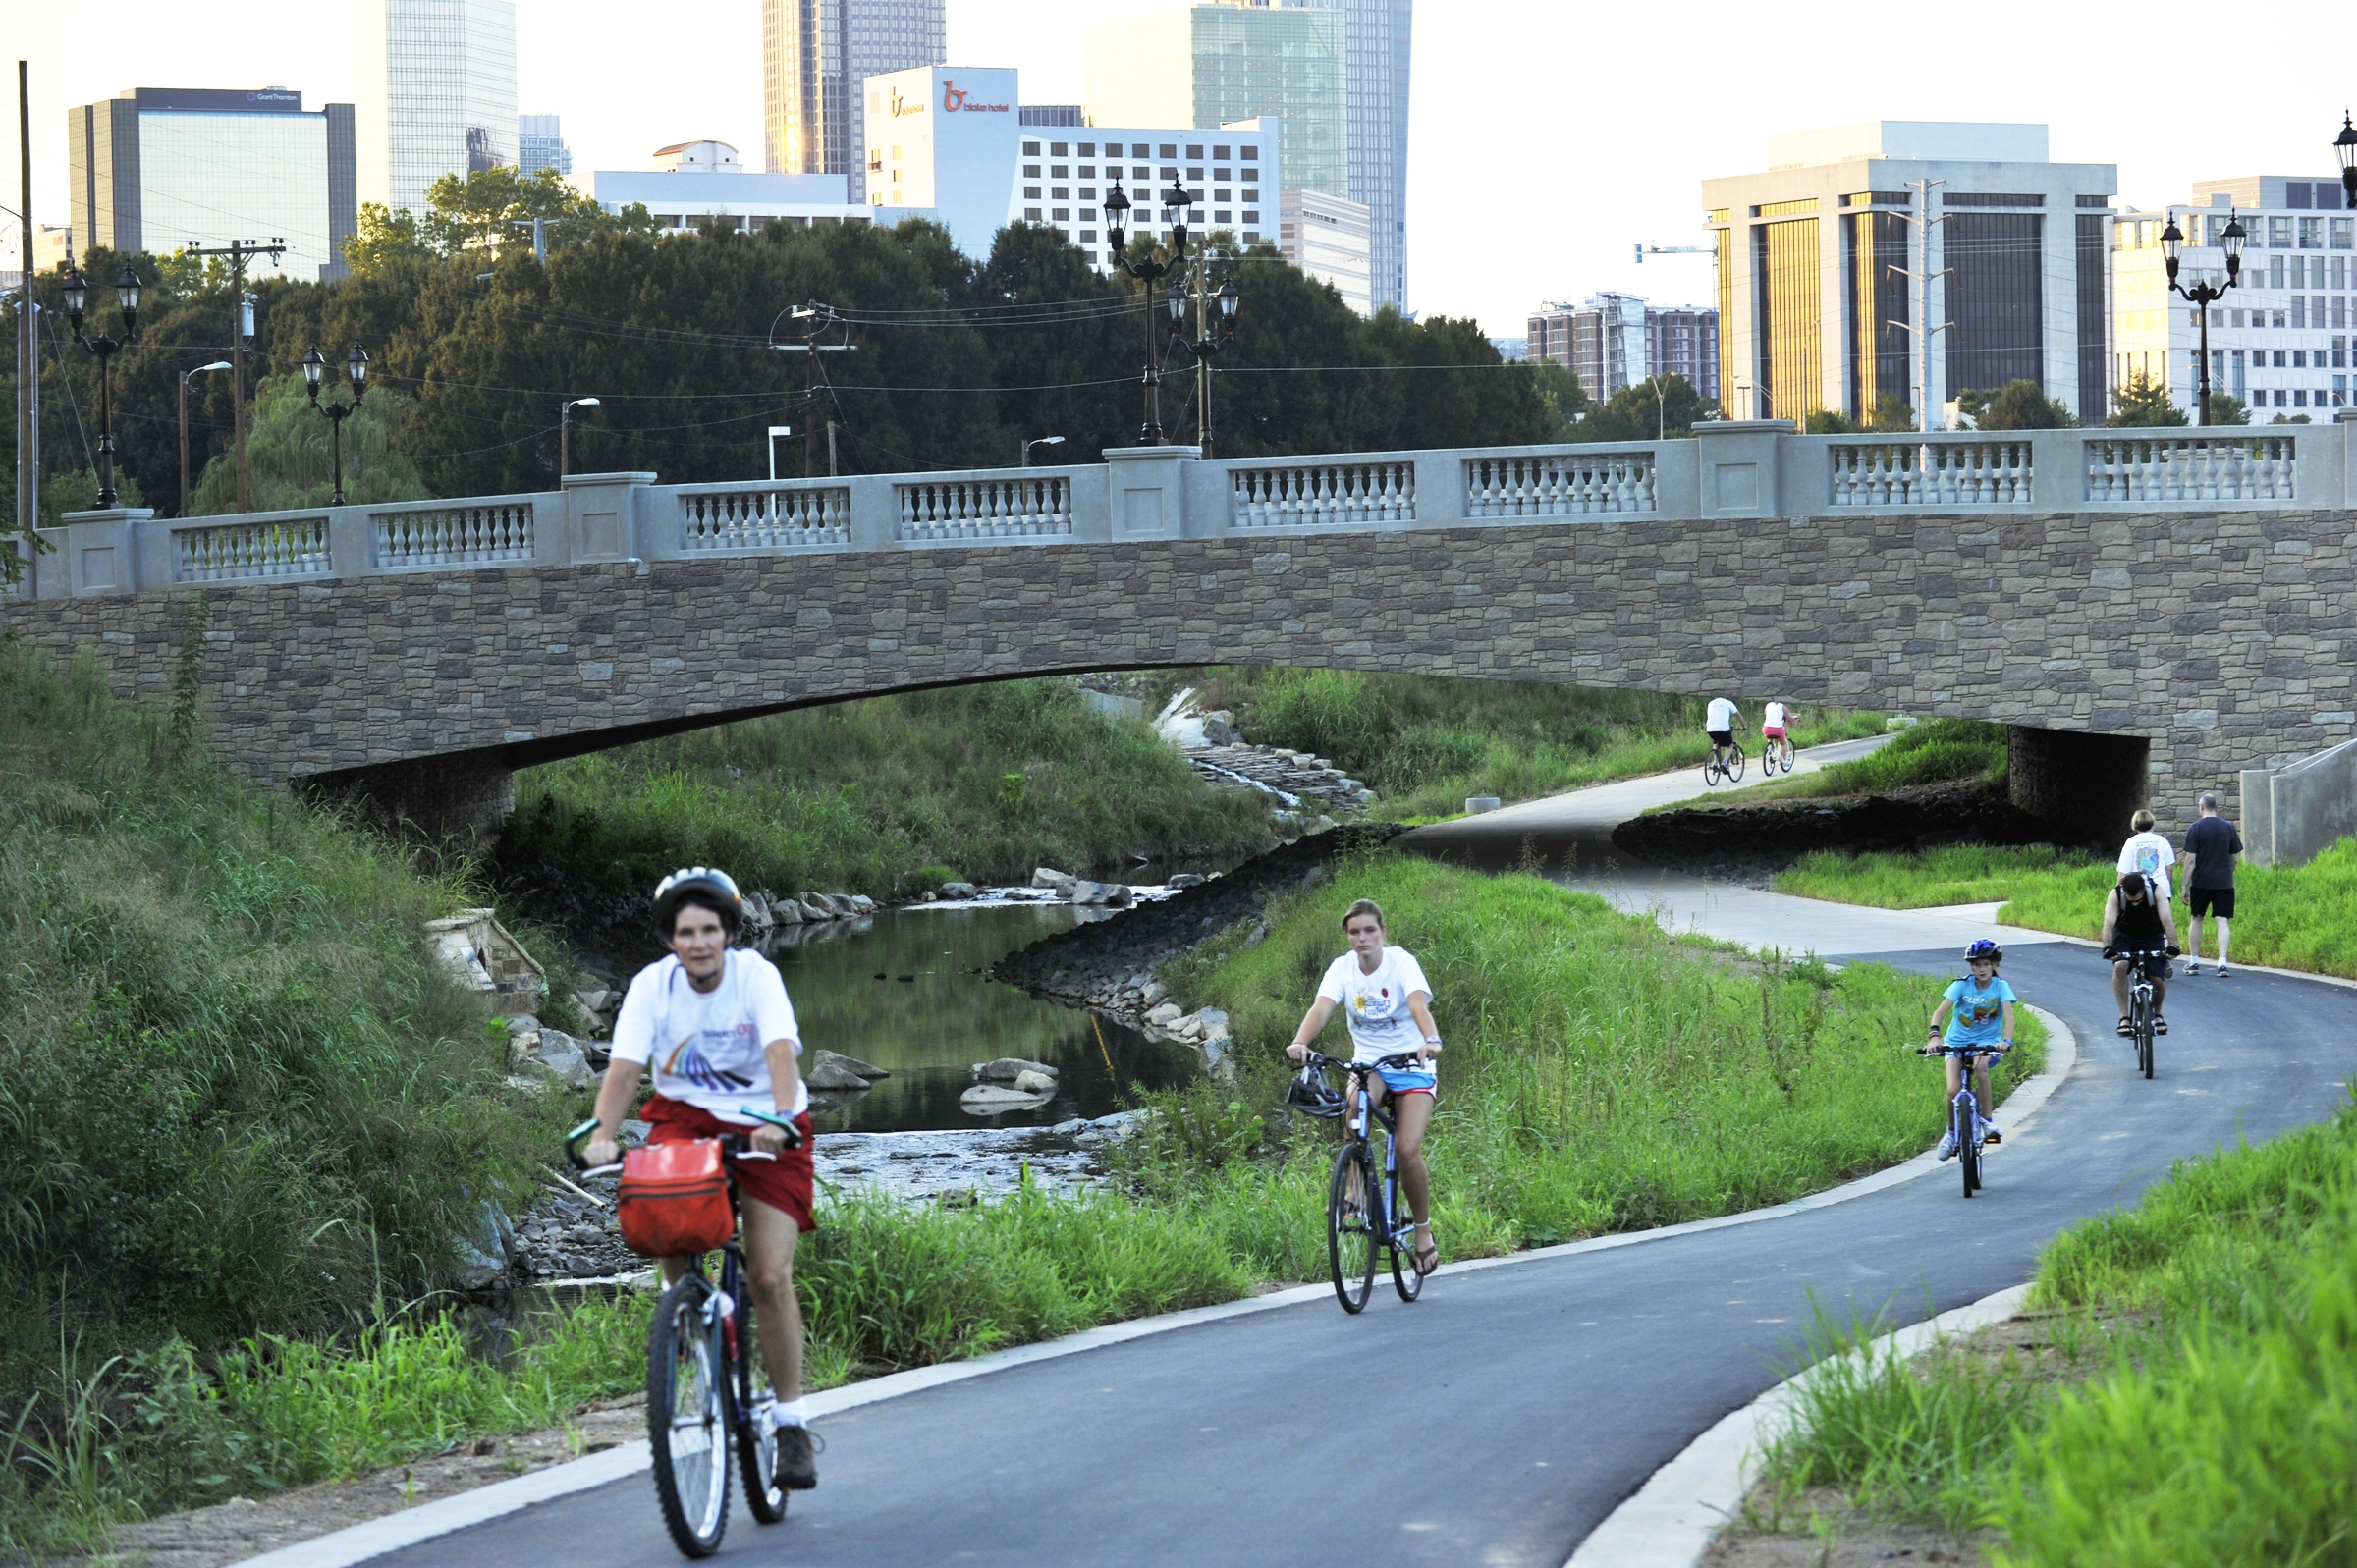 Opened in 2010, the uptown segment of the Little Sugar Creek Greenway brings people near the water. Photo: Nancy Pierce